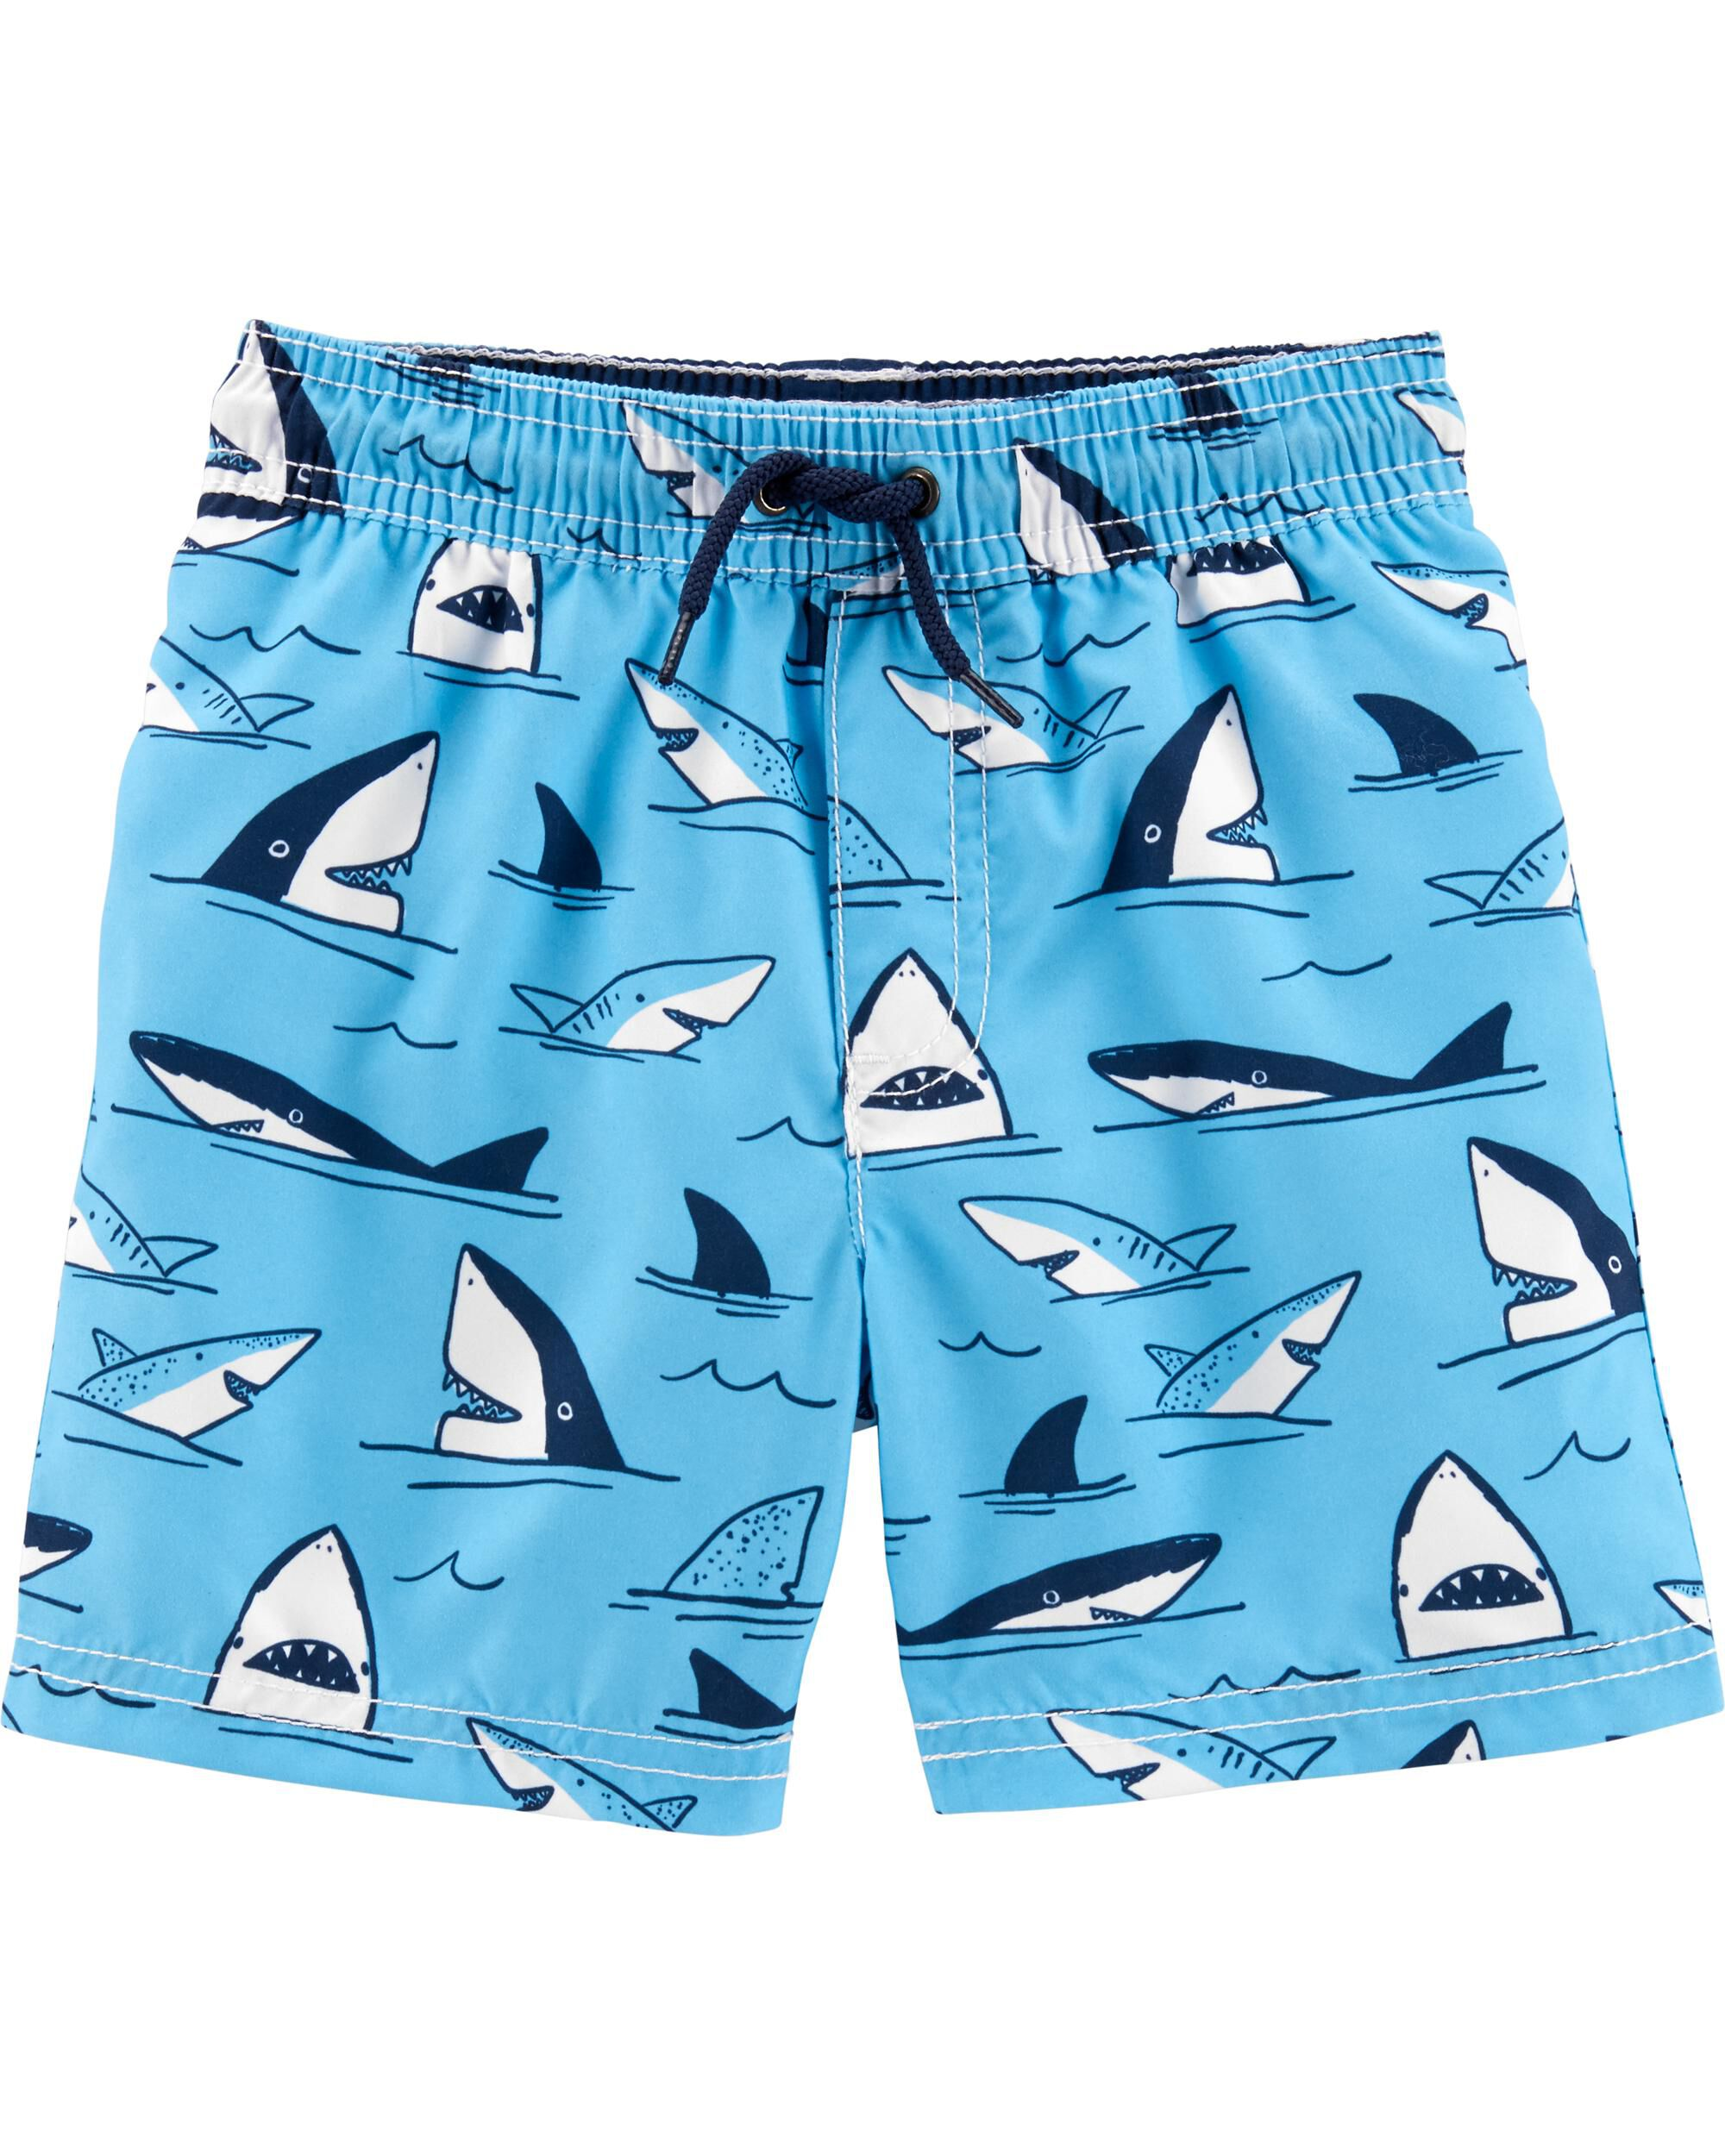 *Clearance*  Carter's Shark Swim Trunks